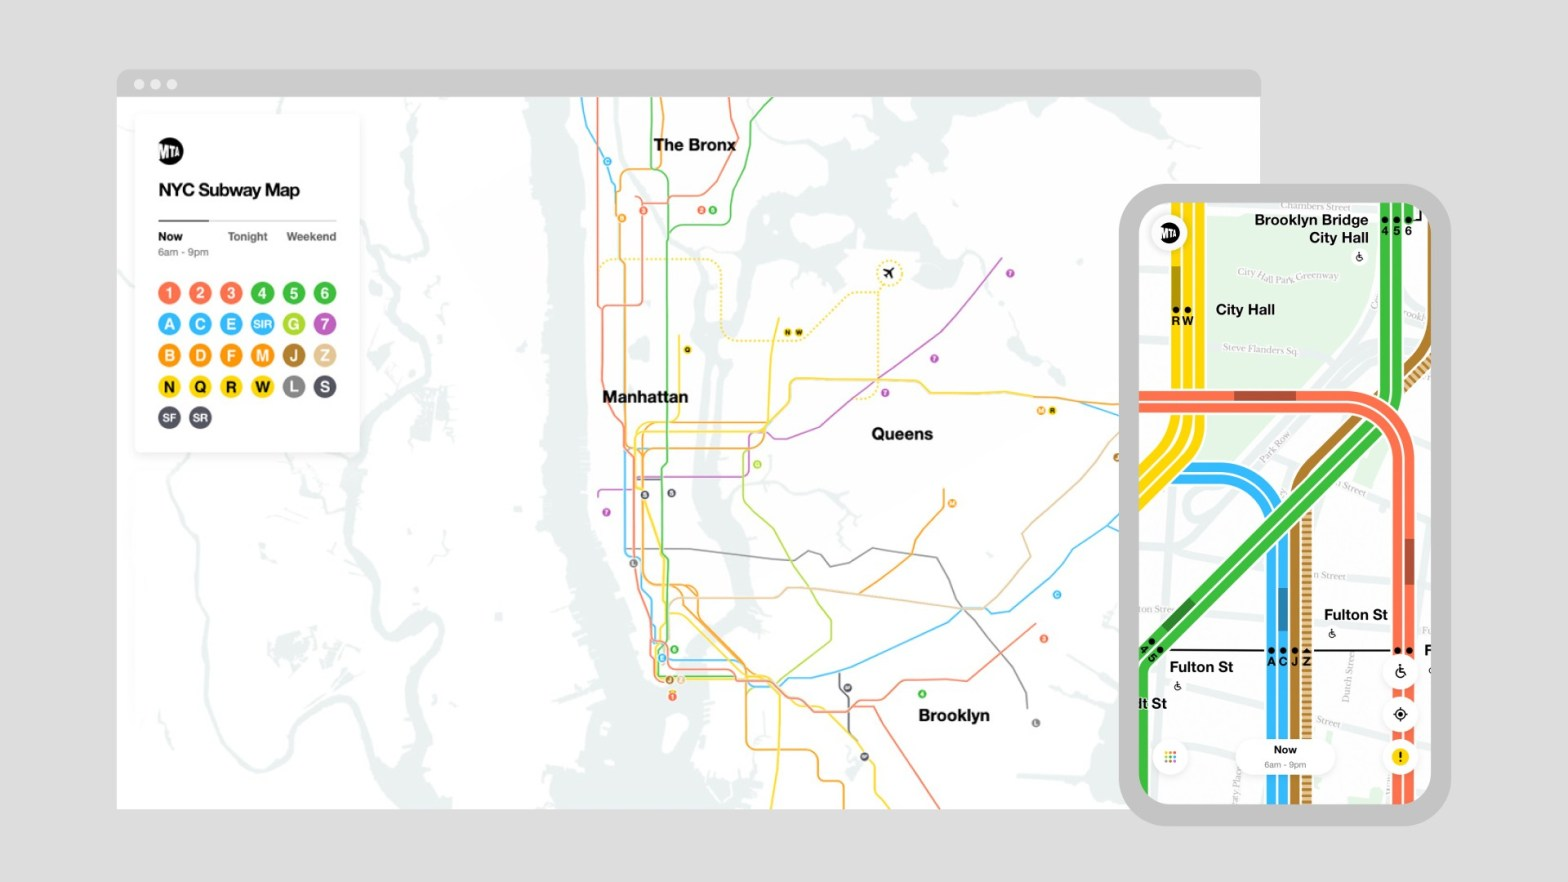 Thumbnail for New York's MTA Map Gets a New Look—and Goes Digital